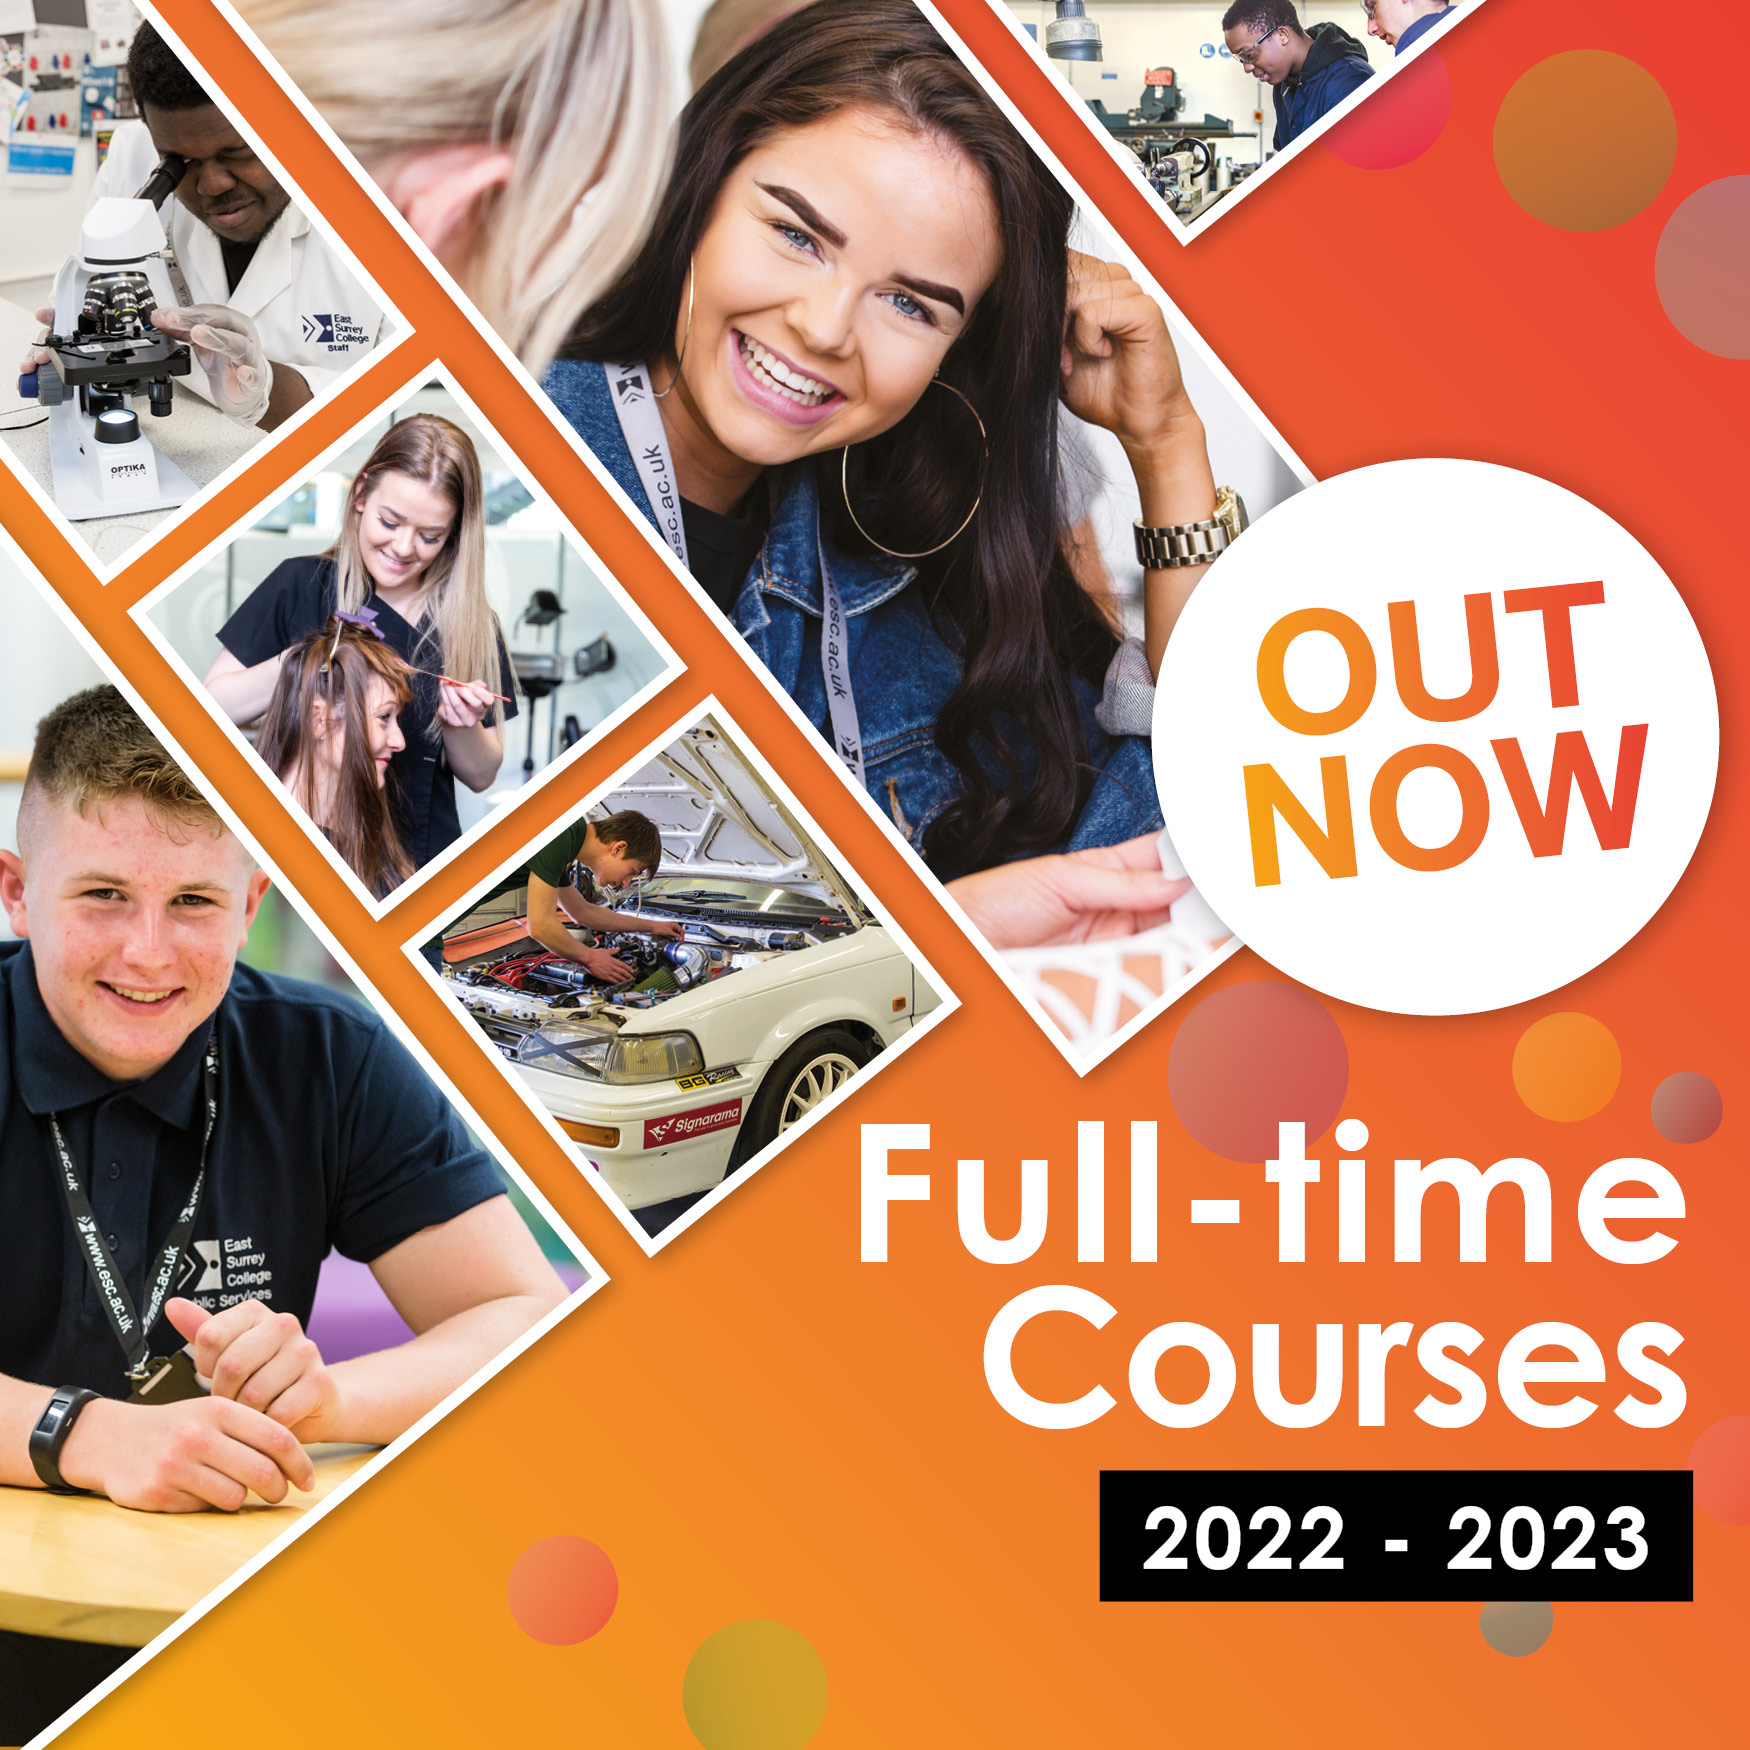 NEW Full-time courses for 2022-2023